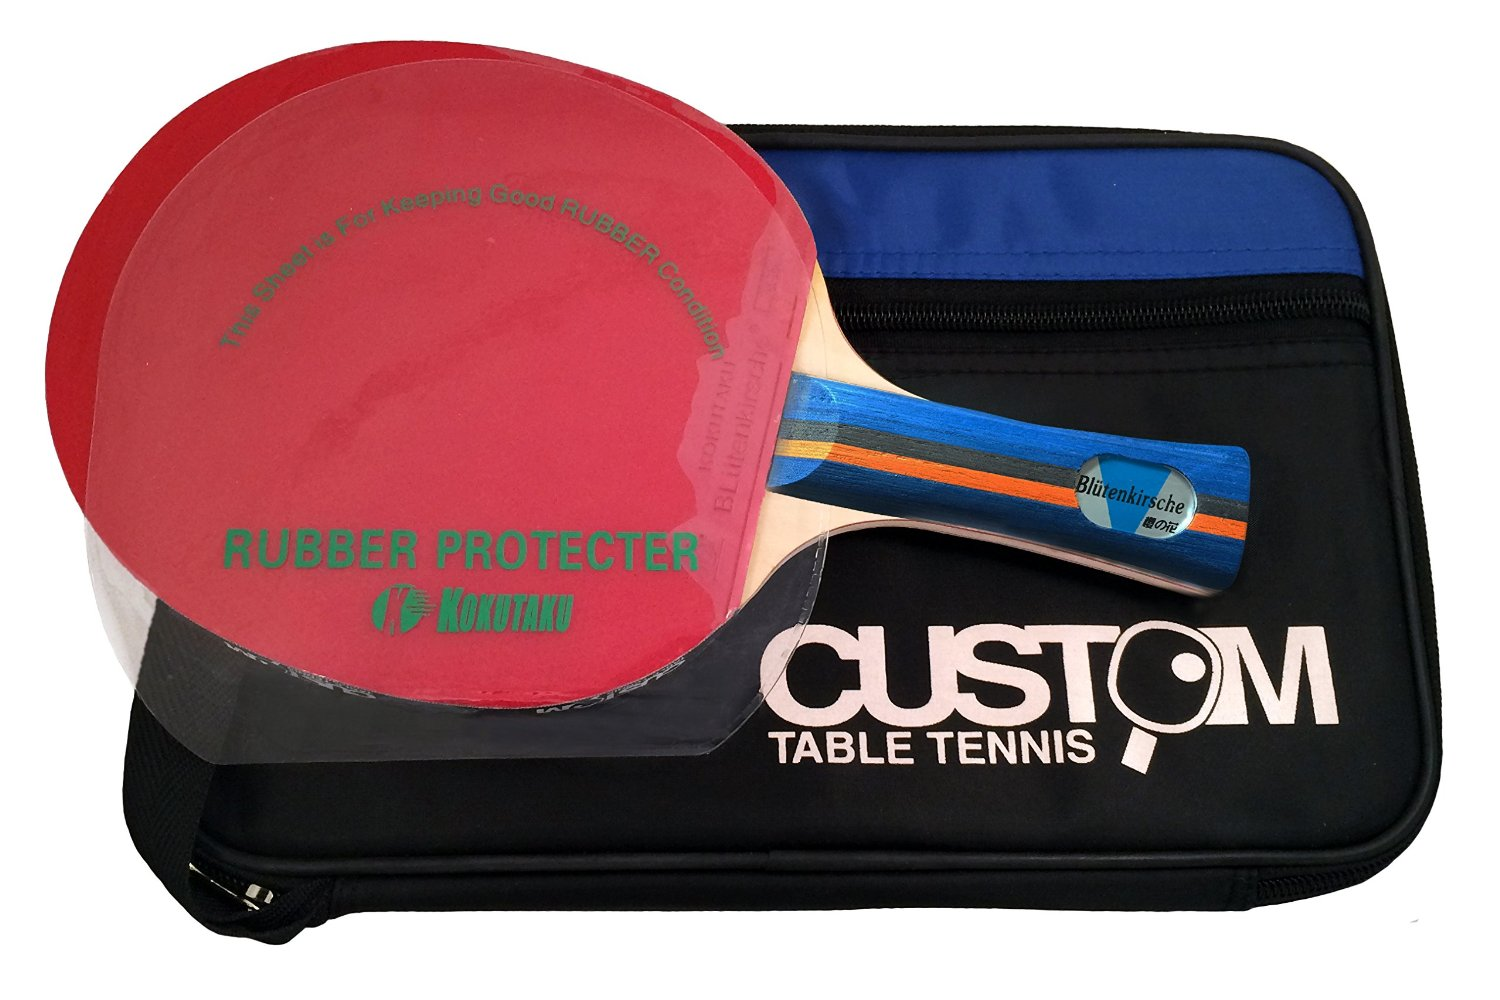 Blutenkirsche Pro Table Tennis Bat Review